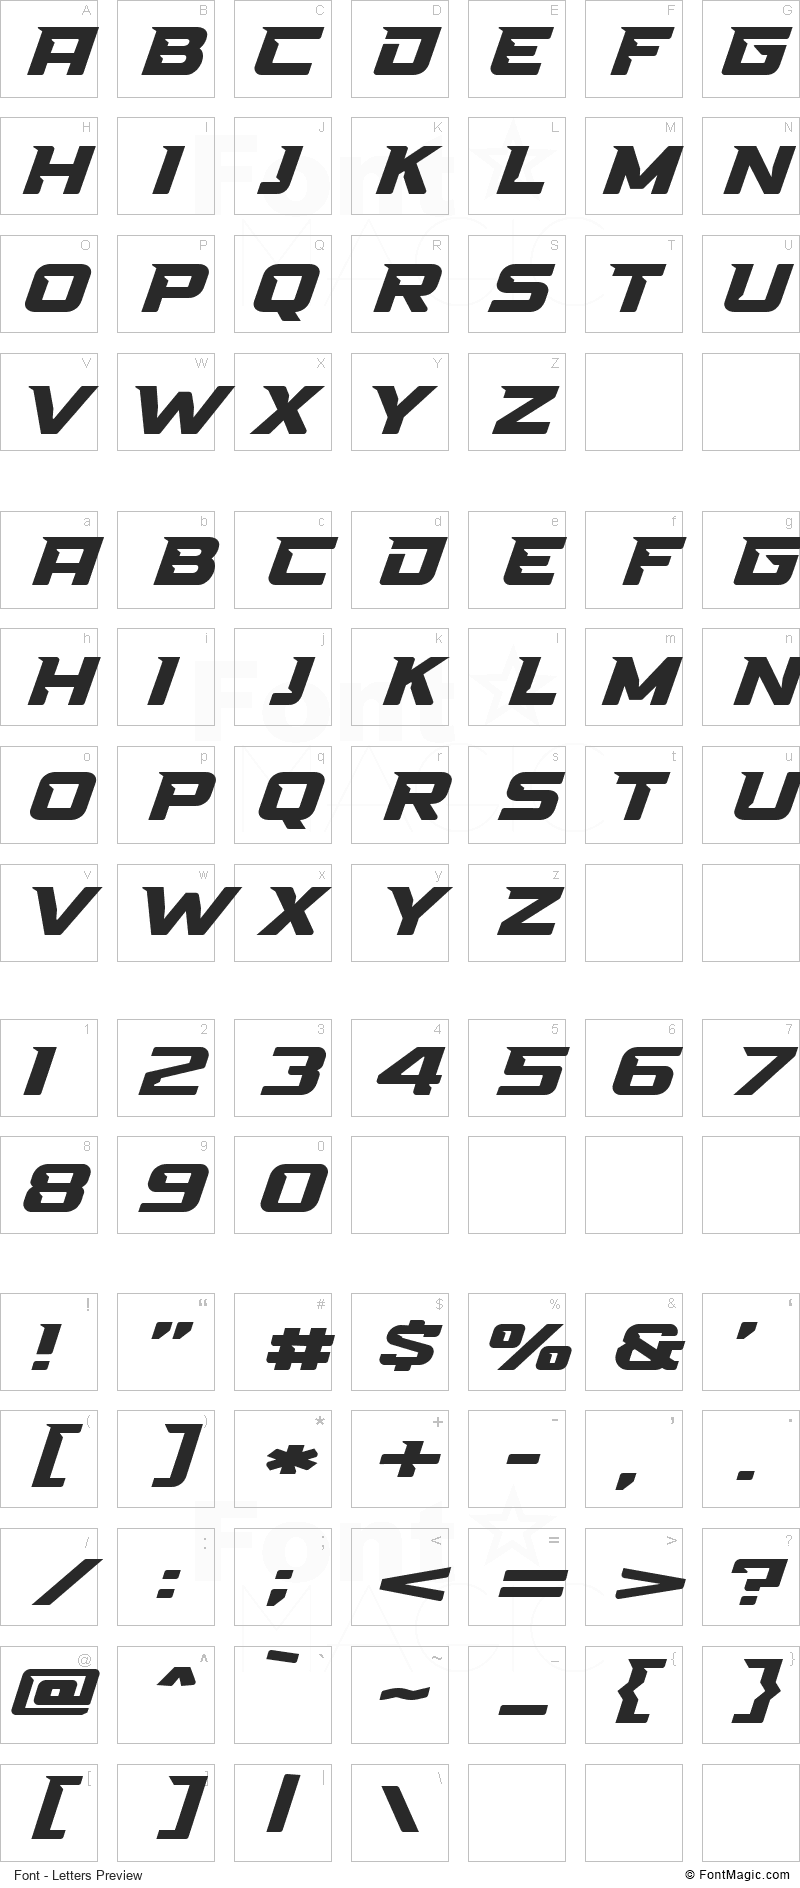 High Speed Font - All Latters Preview Chart